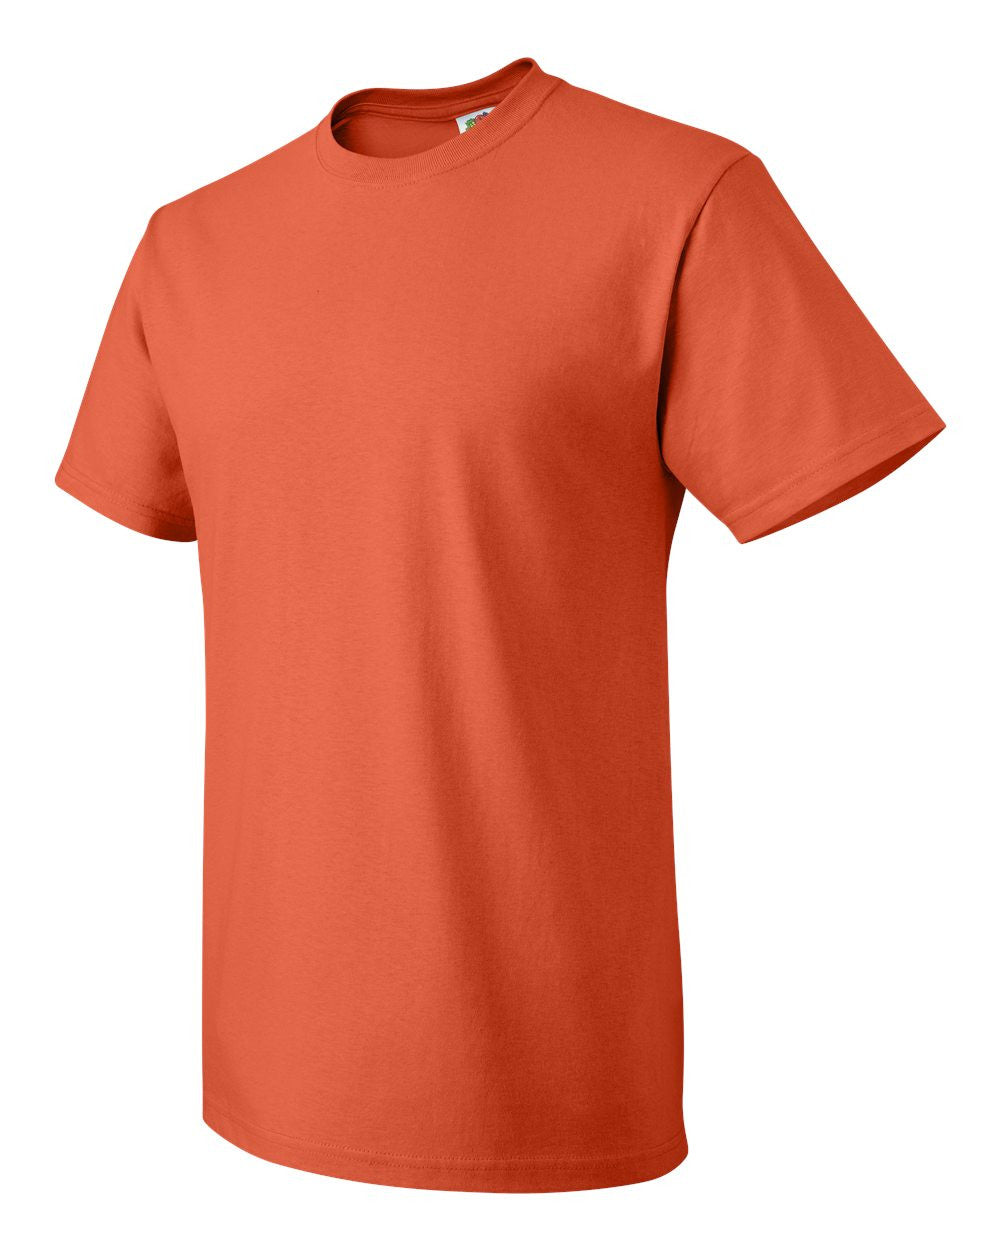 10 pack t-shirts by Fruit of the loom - Choice over 50 colors